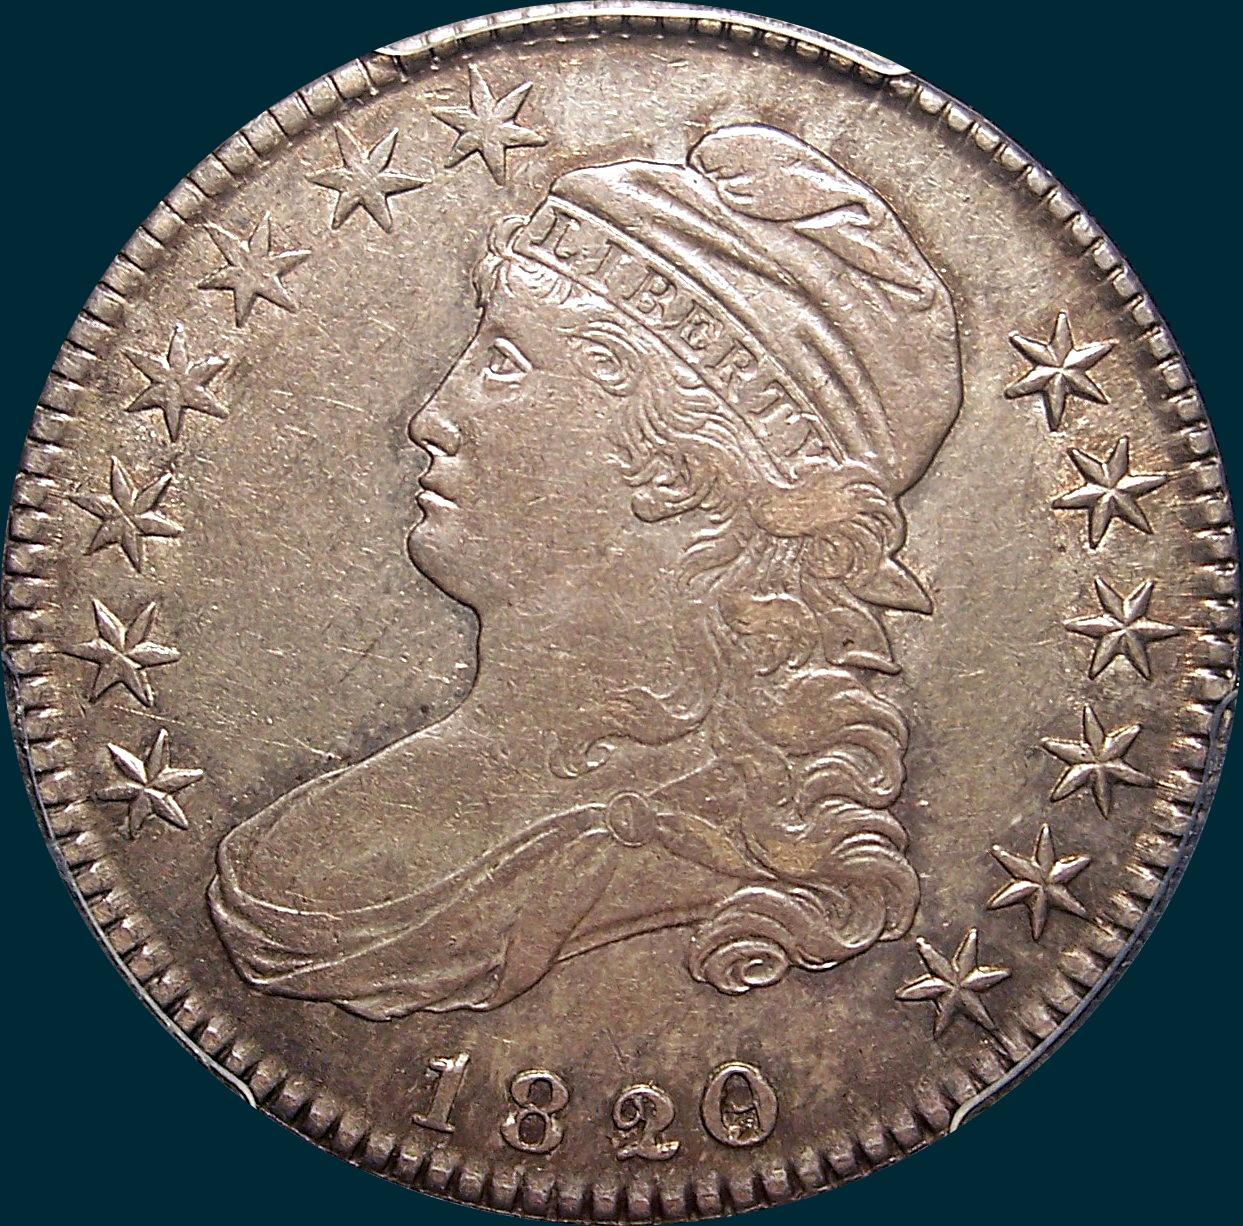 1820/19 O-102, curl based 2, Capped bust half dollar